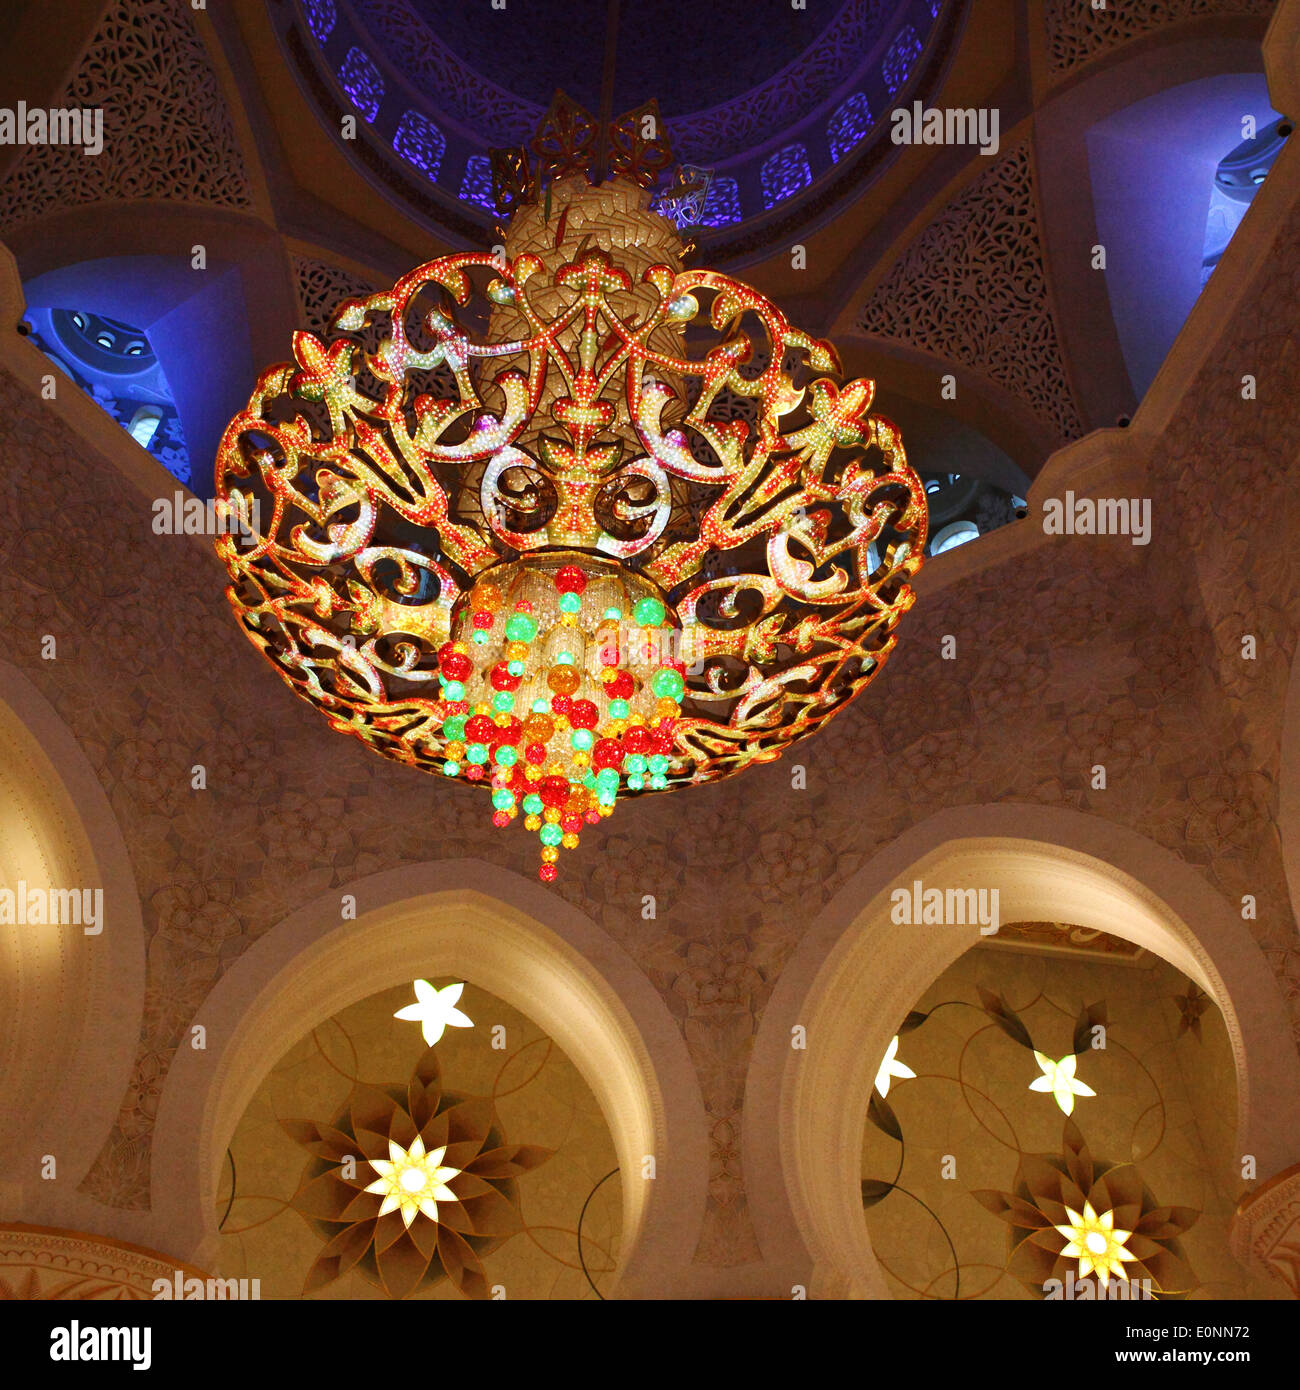 Chandelier of the Sheikh Zayed Grand Mosque in Abu Dhabi Stock ...